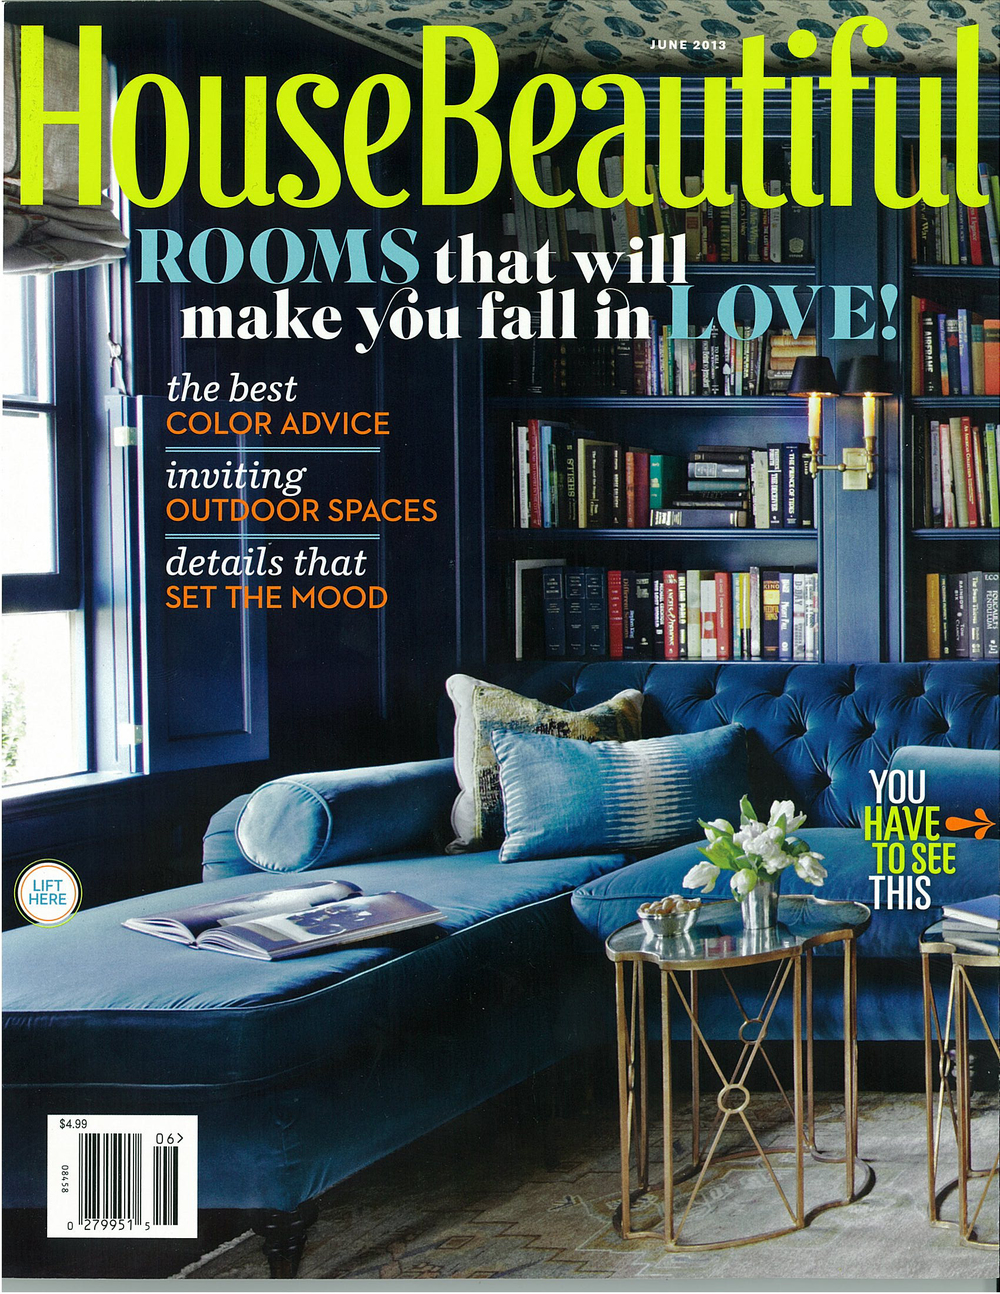 ML.HouseBeautiful.jpg